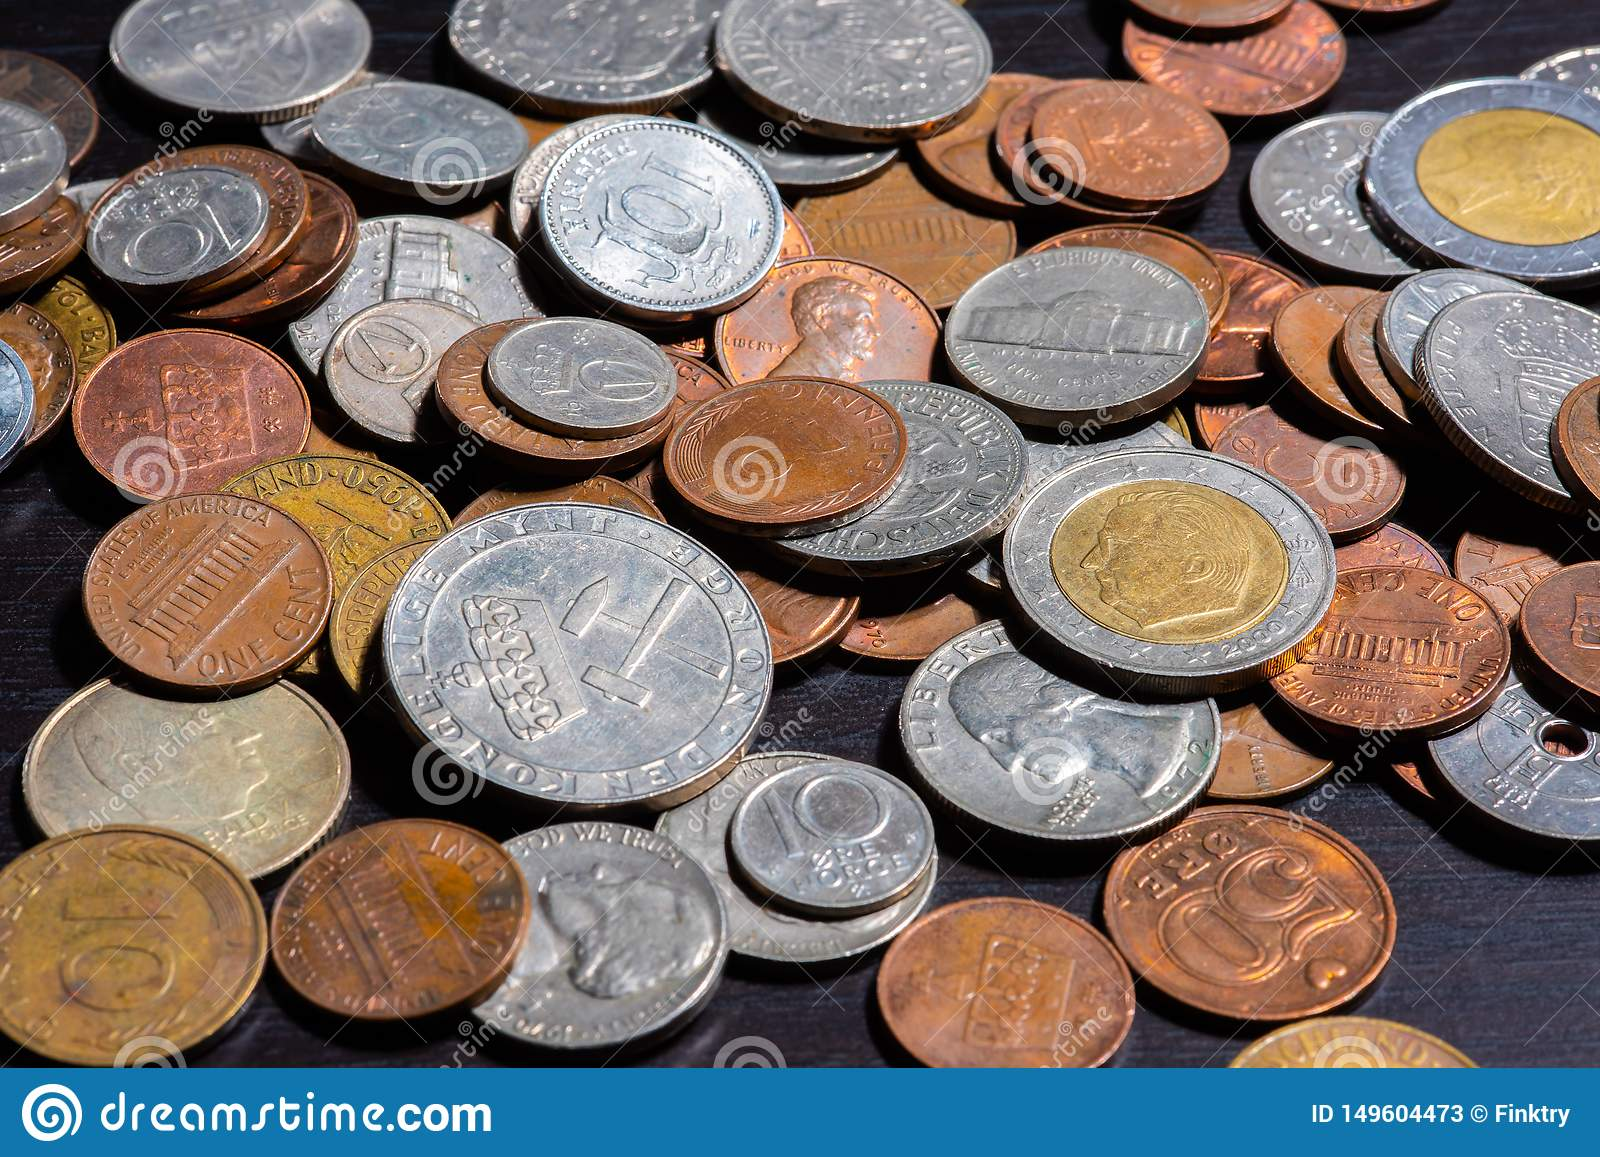 Different kinds of coins on a black table